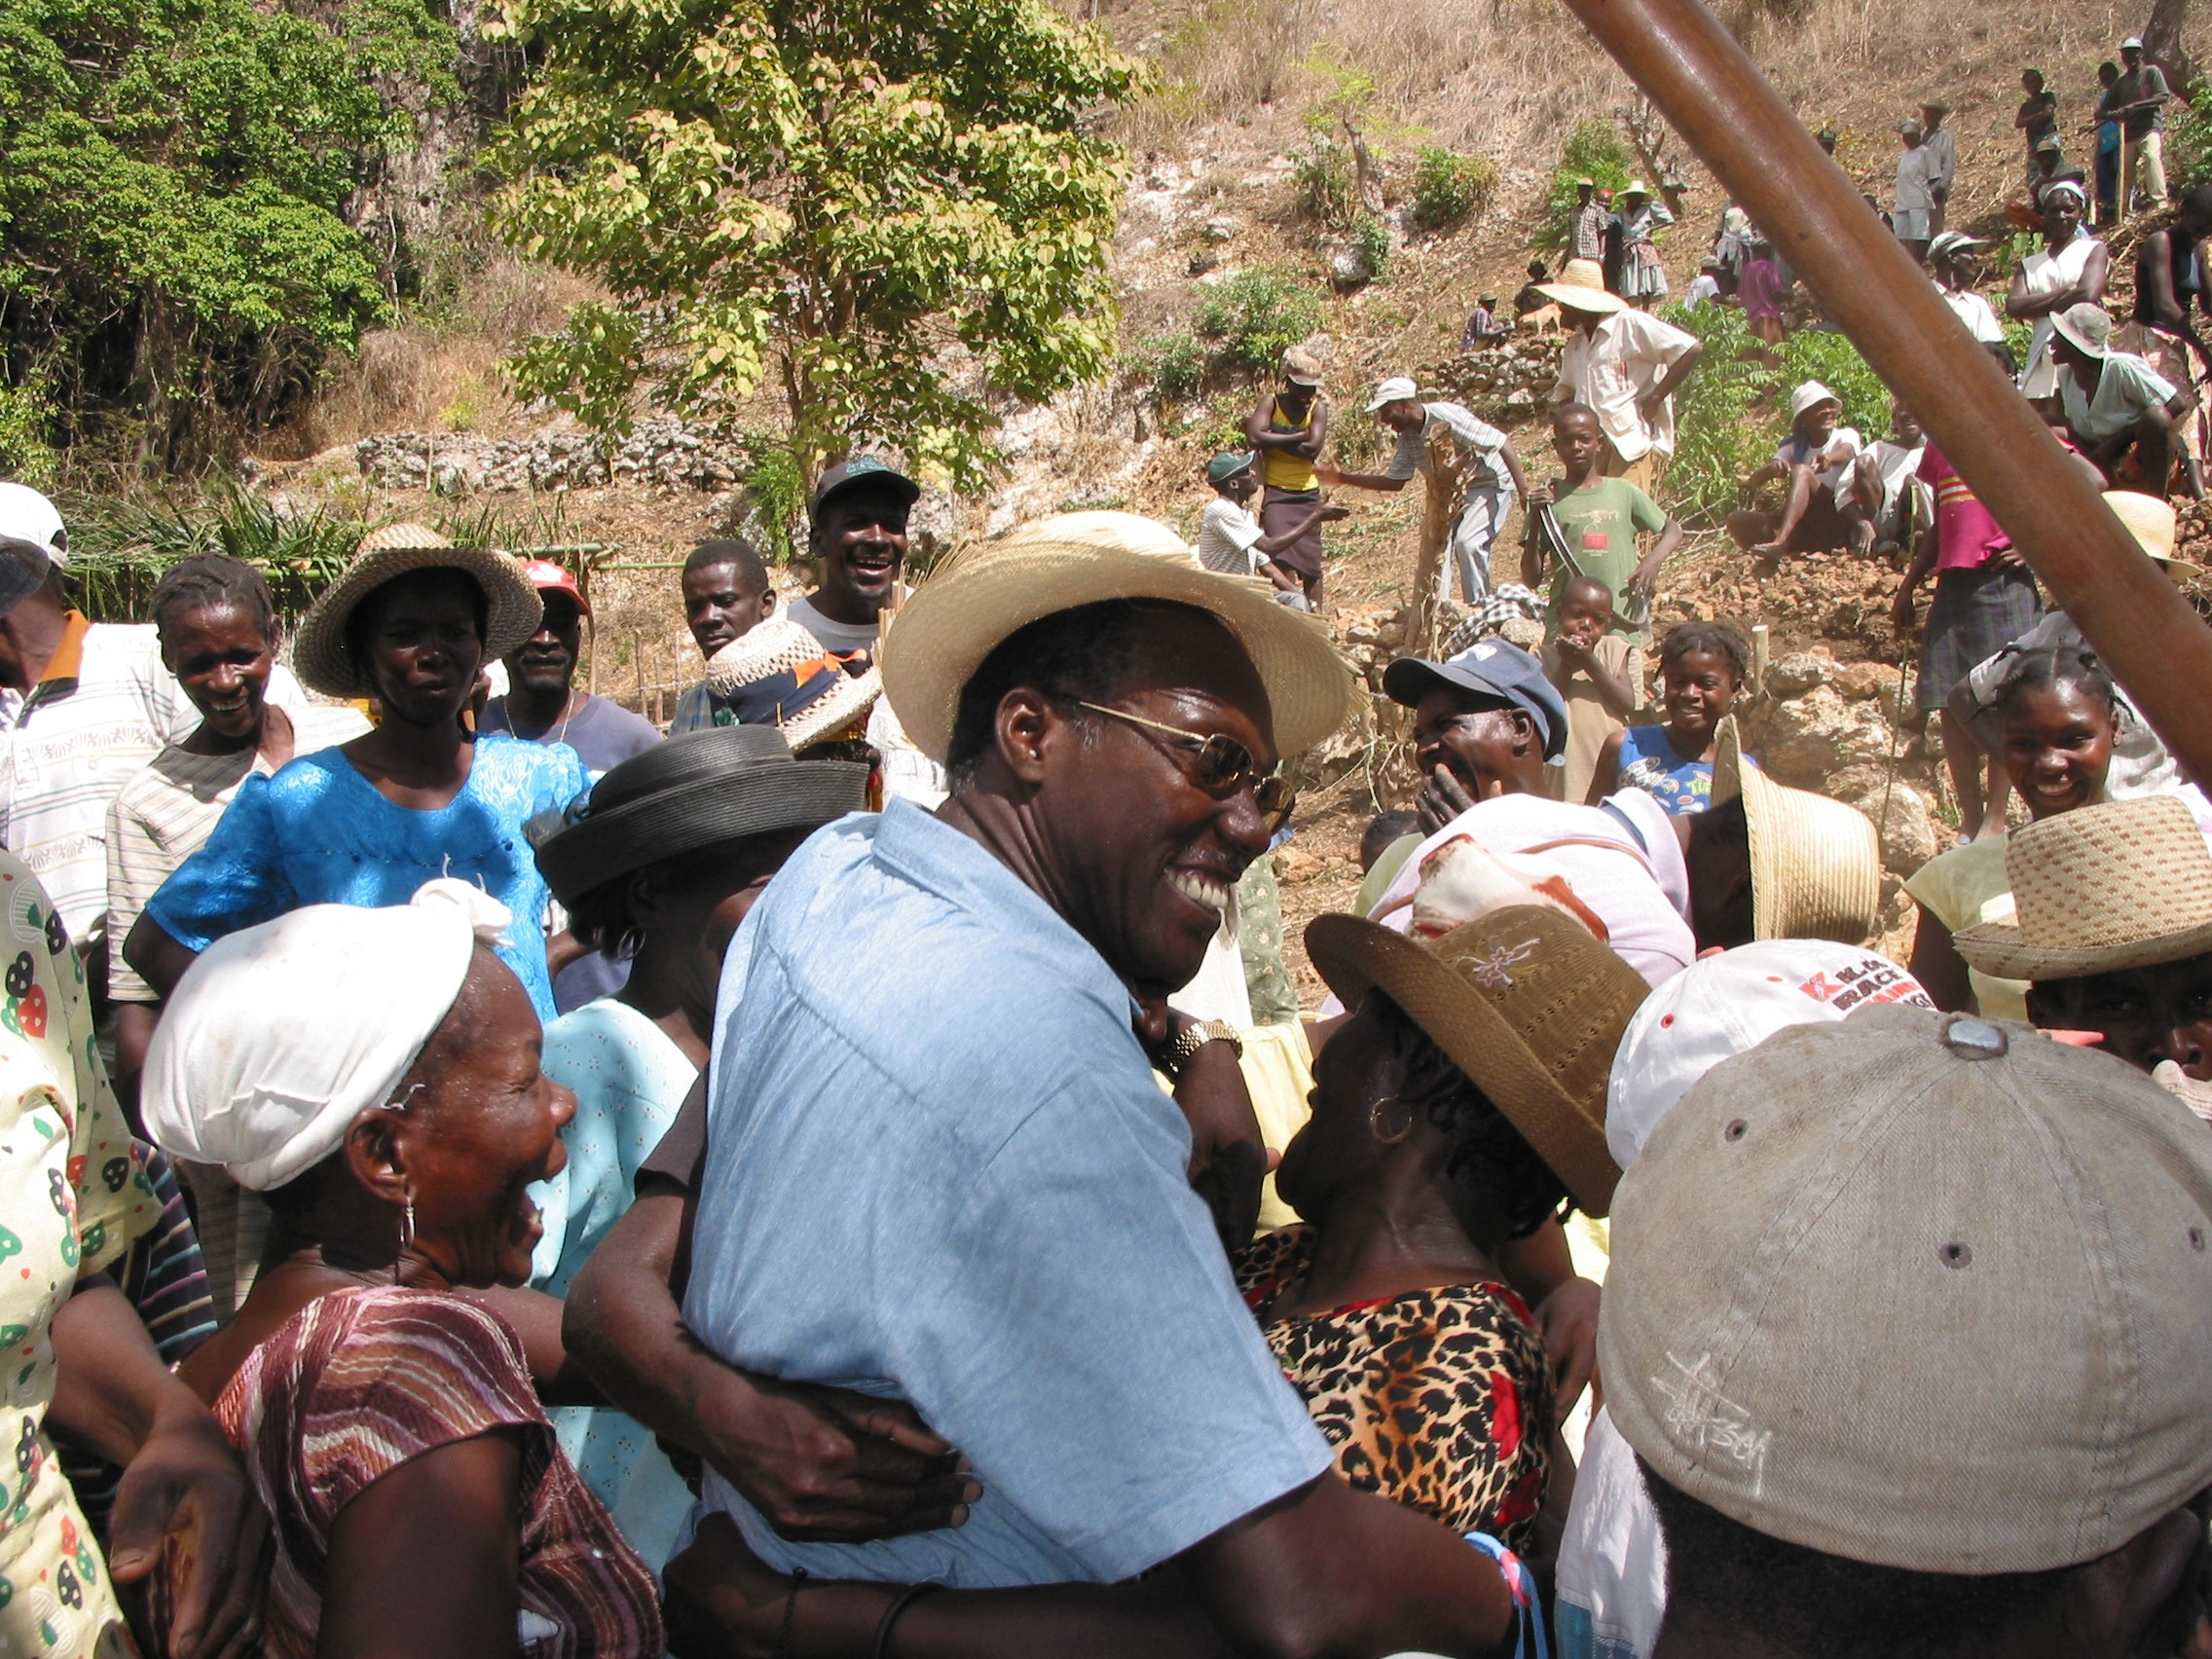 Chavannes Jean-Baptiste, 2005 Goldman Environmental Prize Winner, Islands & Island Nations (Haiti), at a traditional konbit--a communal work day spent building walls to conserve the soil.